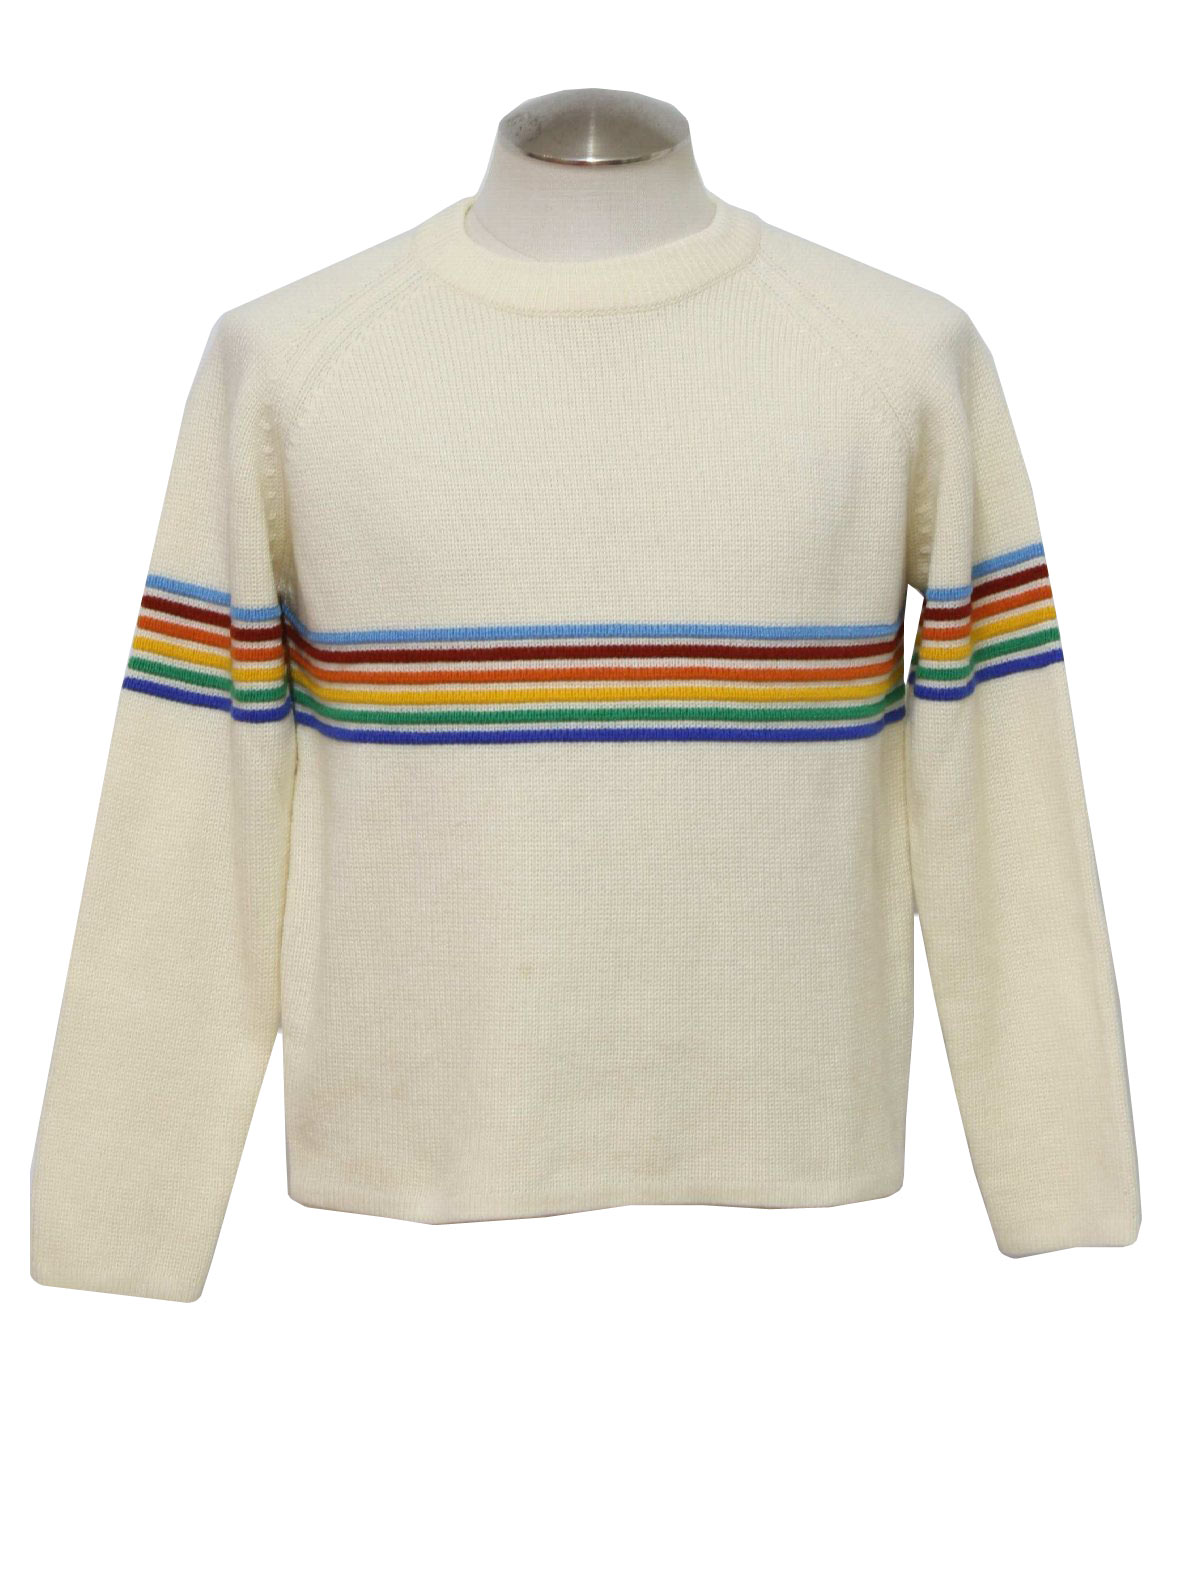 Blue And Yellow Striped Sweater Her Sweater